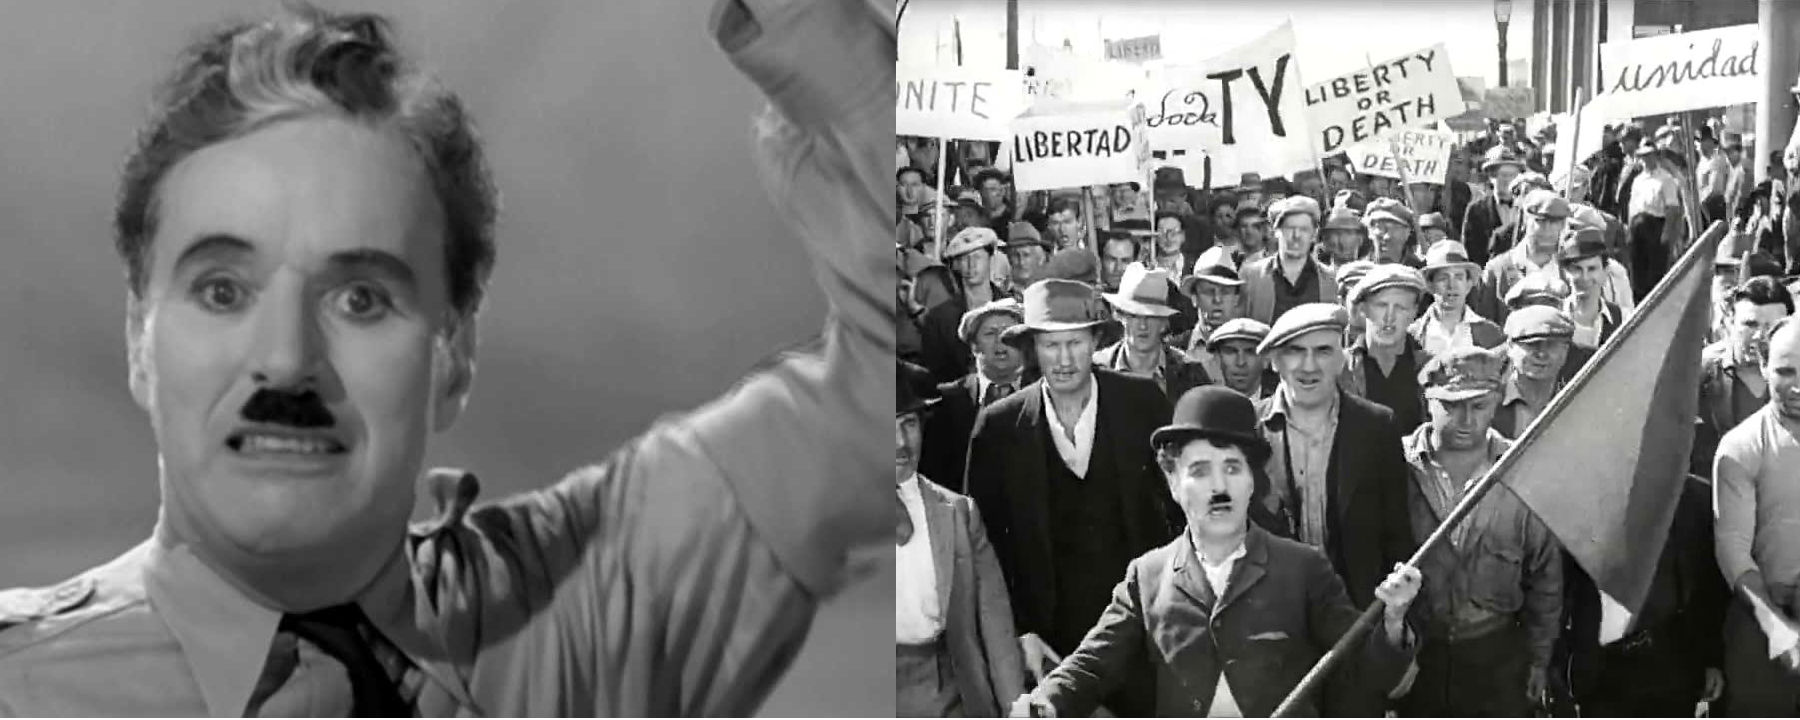 Left: Charlie Chaplin in The Great Dictator, Right: Chaplin in Modern Times